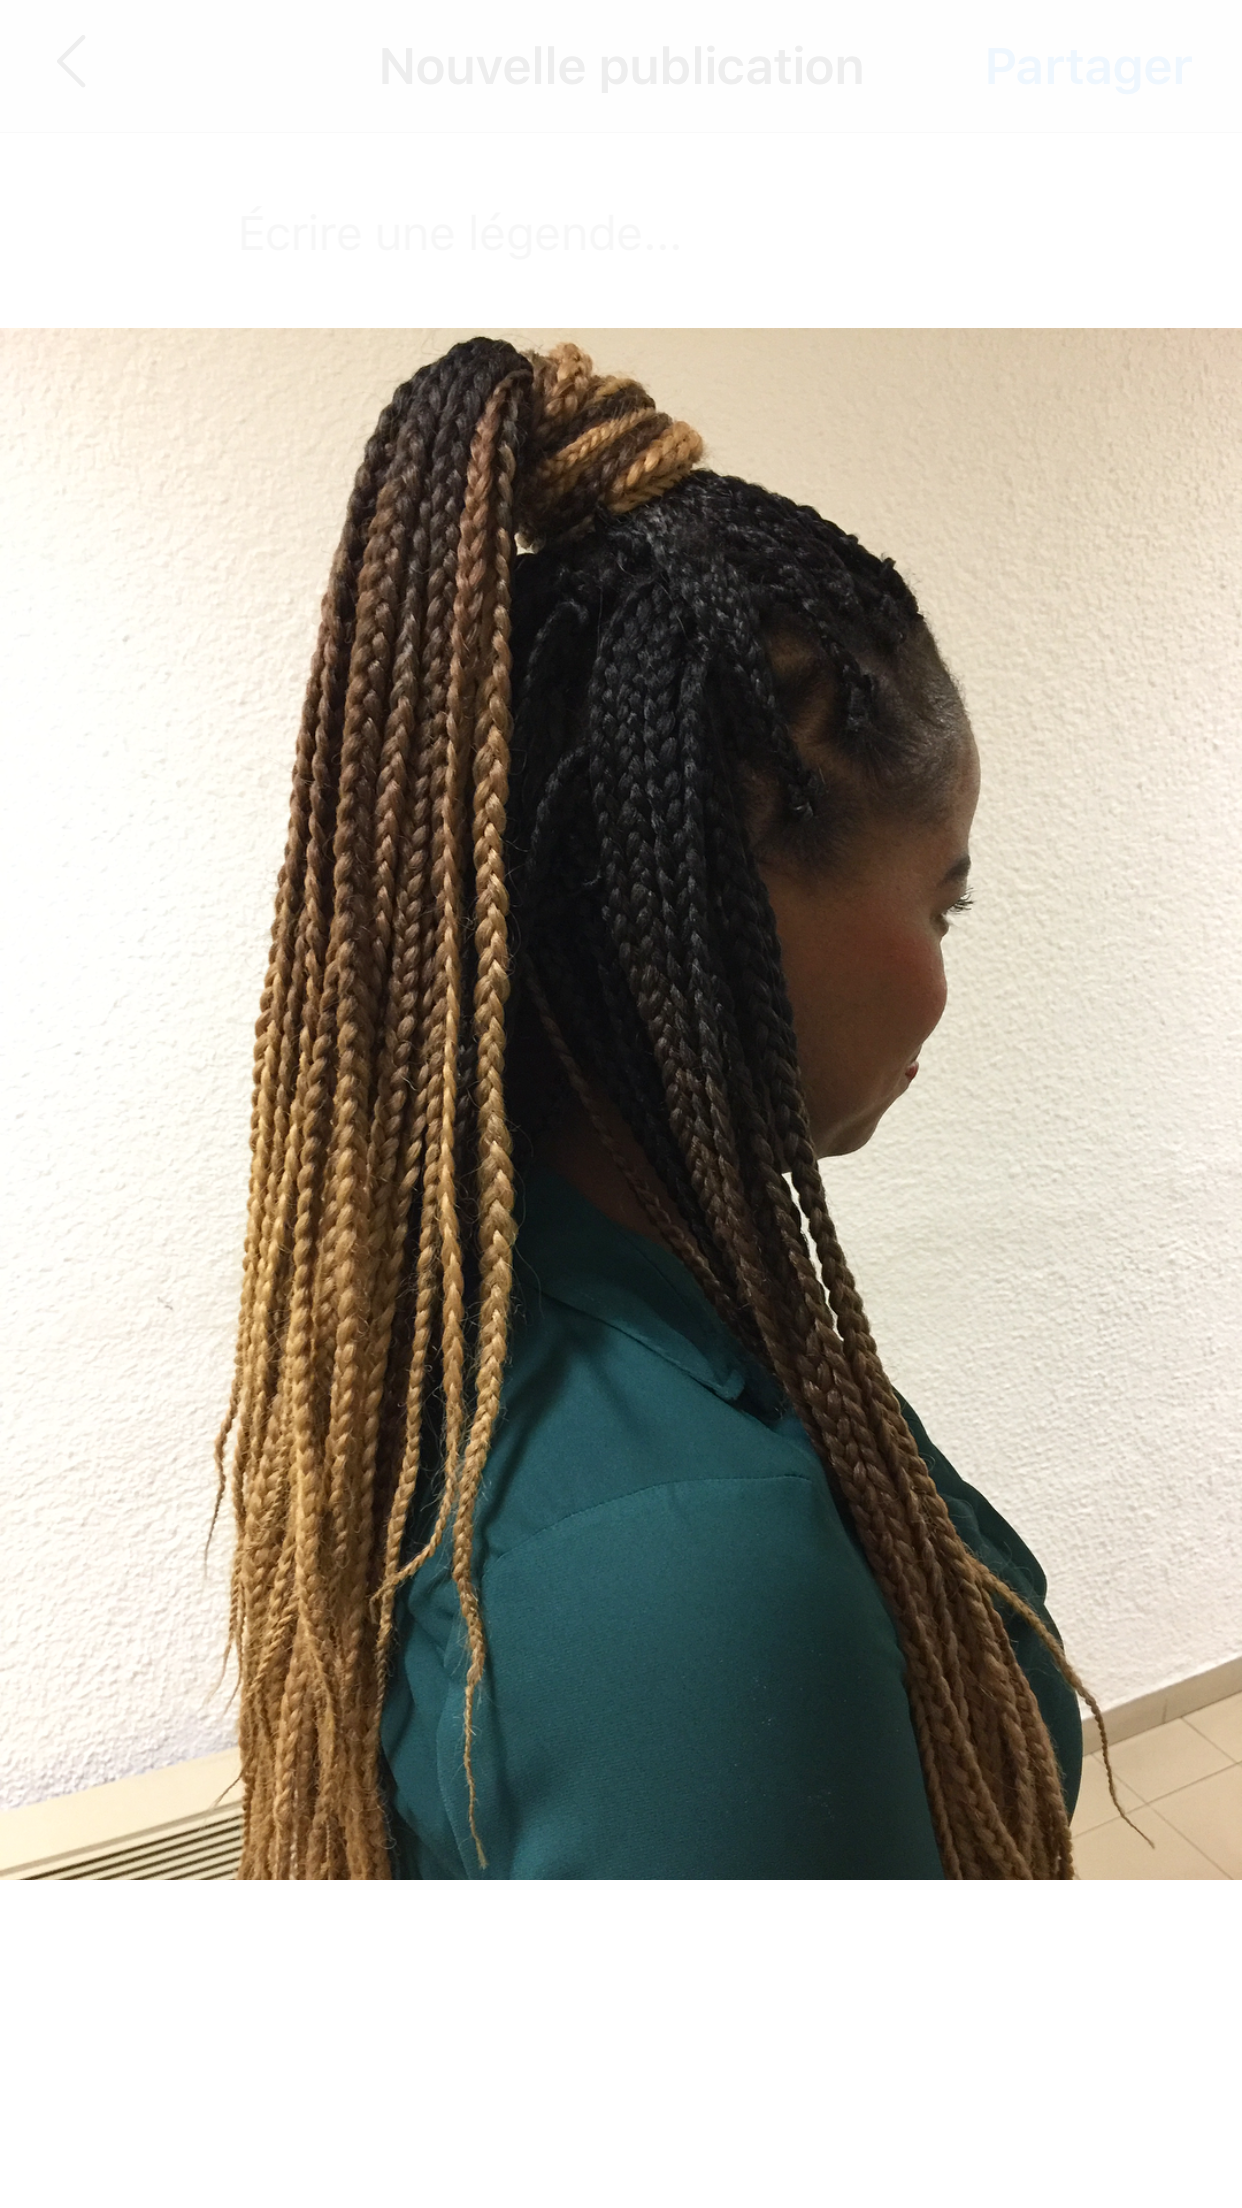 salon de coiffure afro tresse tresses box braids crochet braids vanilles tissages paris 75 77 78 91 92 93 94 95 JWMKXBGZ